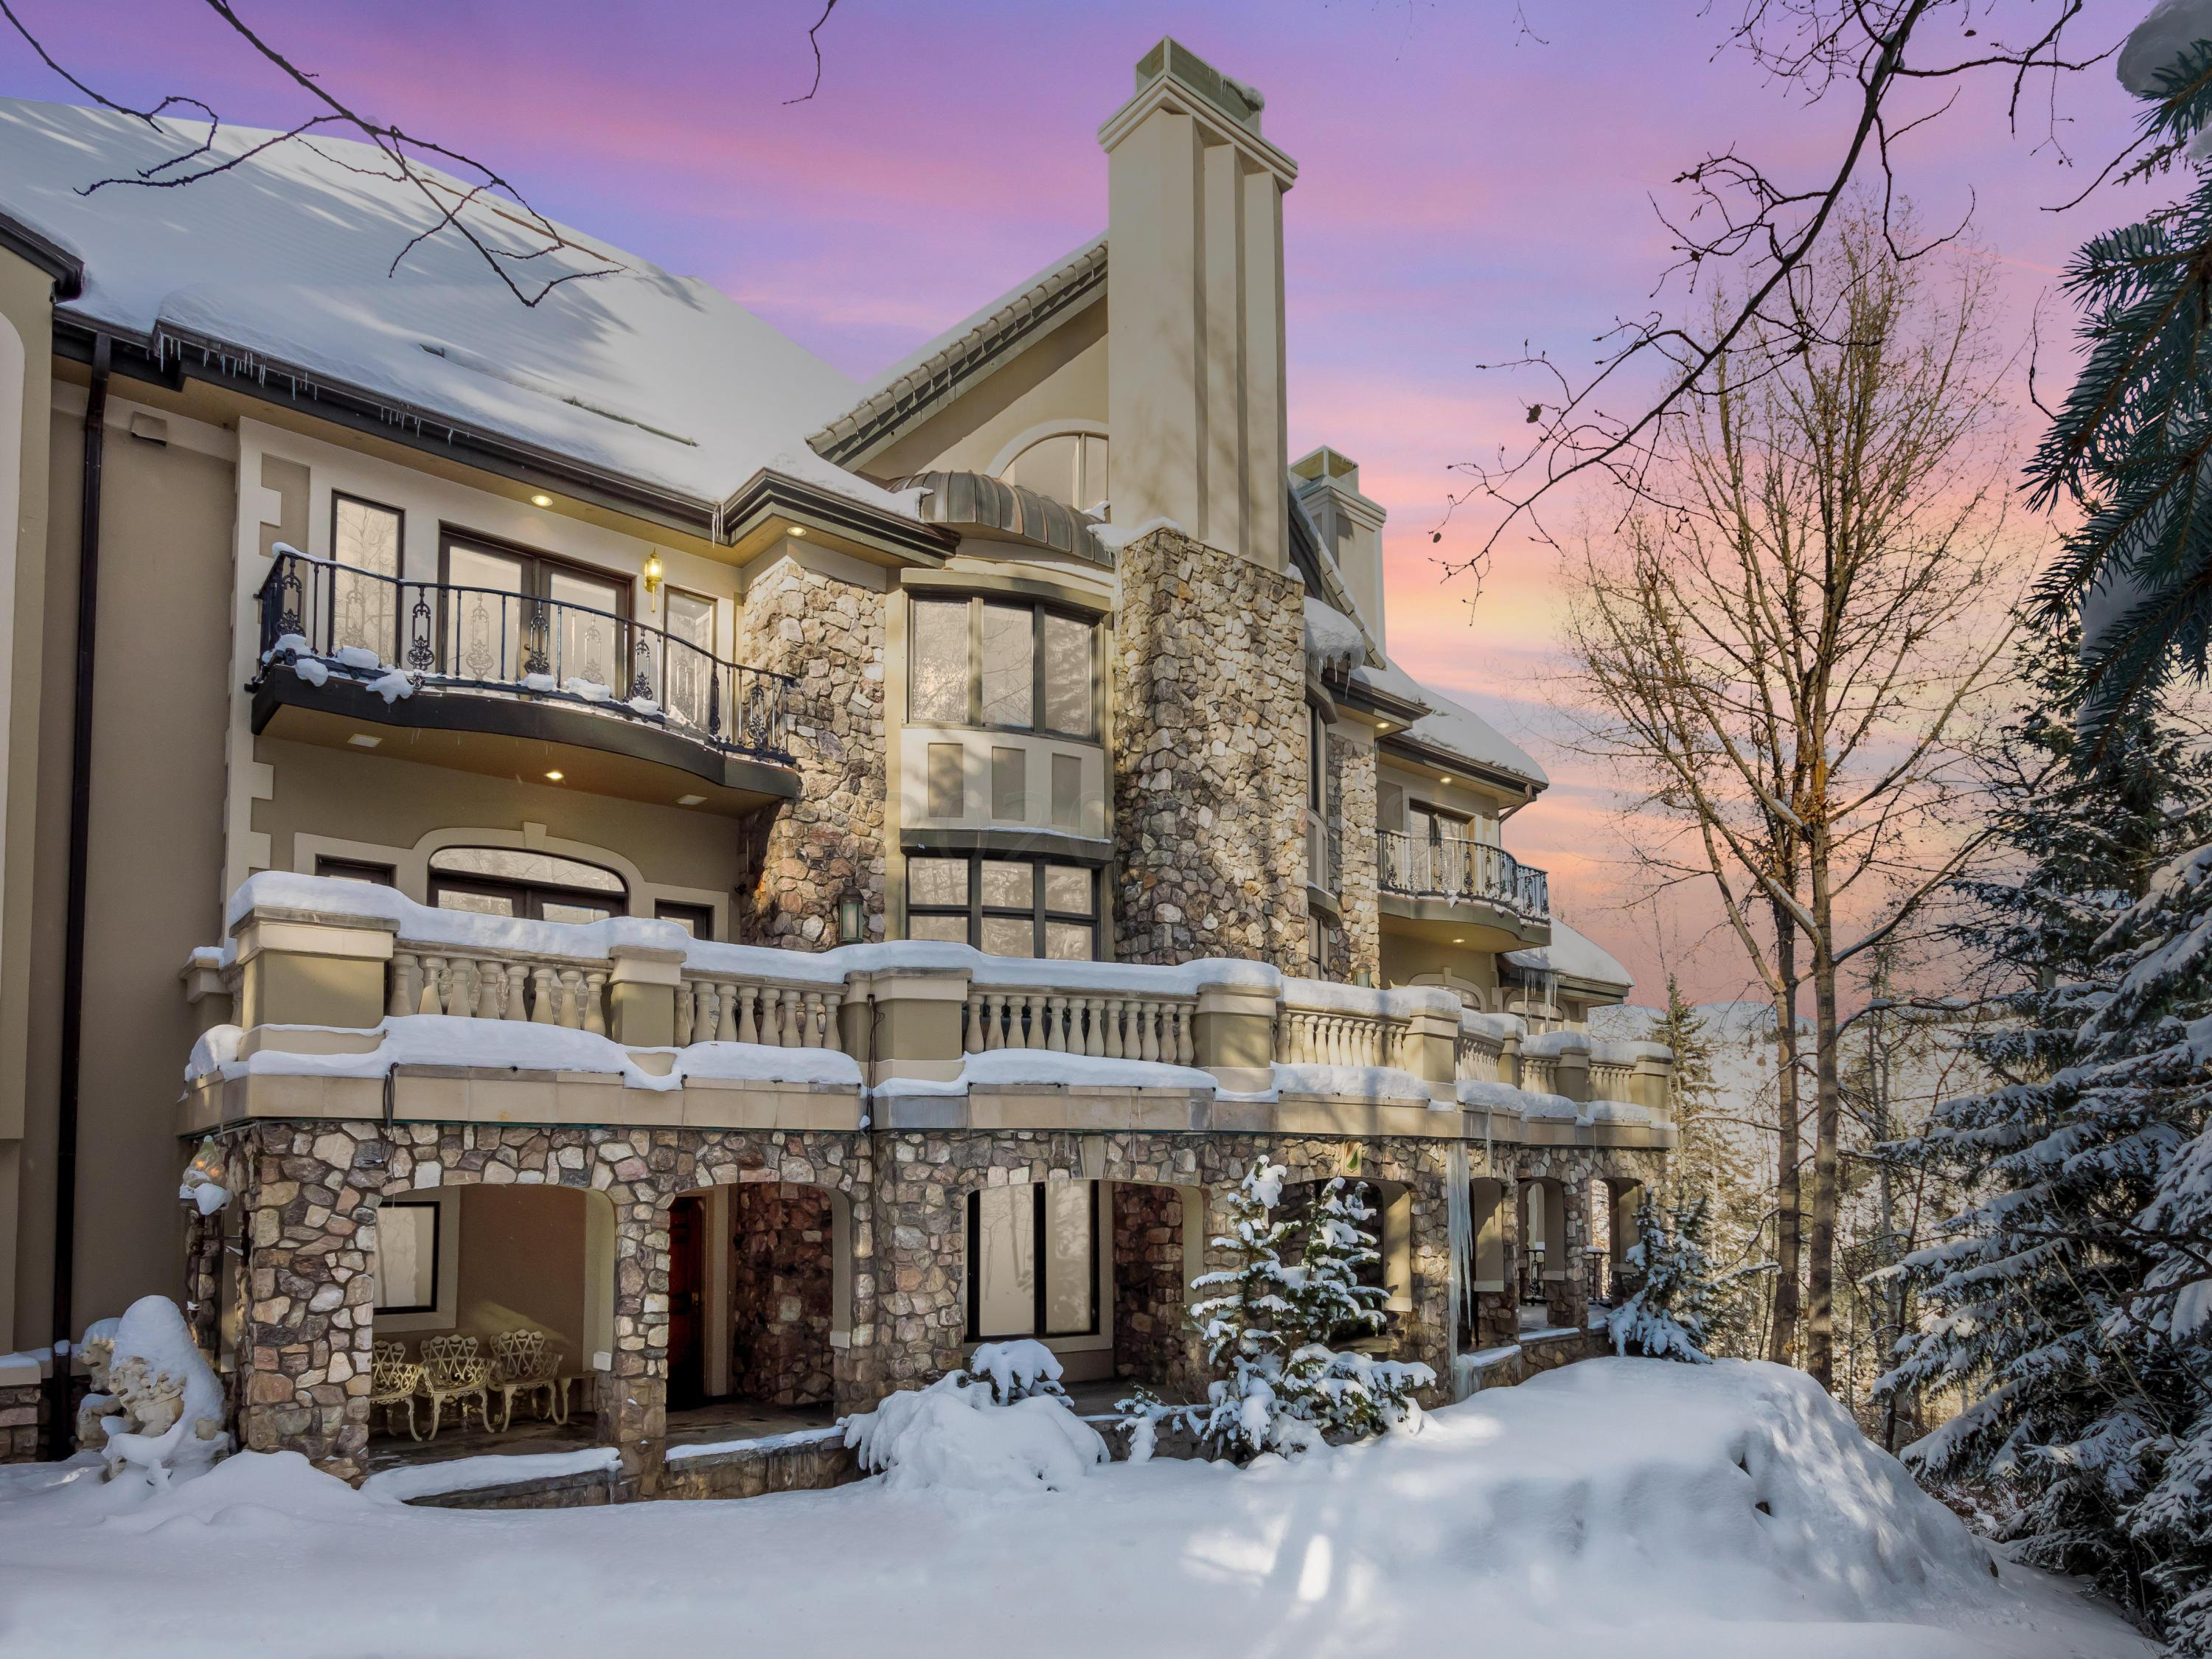 Reminiscent of the chateaus on the fabled Cote d'Azure, this 8-bedroom European-inspired contemporary manor is the pinnacle of elegance and prestige. Fall in love with the attention to detail, rich textures, romantic decorative forms, superb terraces and exceptional views of the ski mountain. Located within the gates of Beaver Creek, this iconic residence is a must-see for the refined buyer. Relish in quintessential Colorado living in this private, perfectly executed estate.